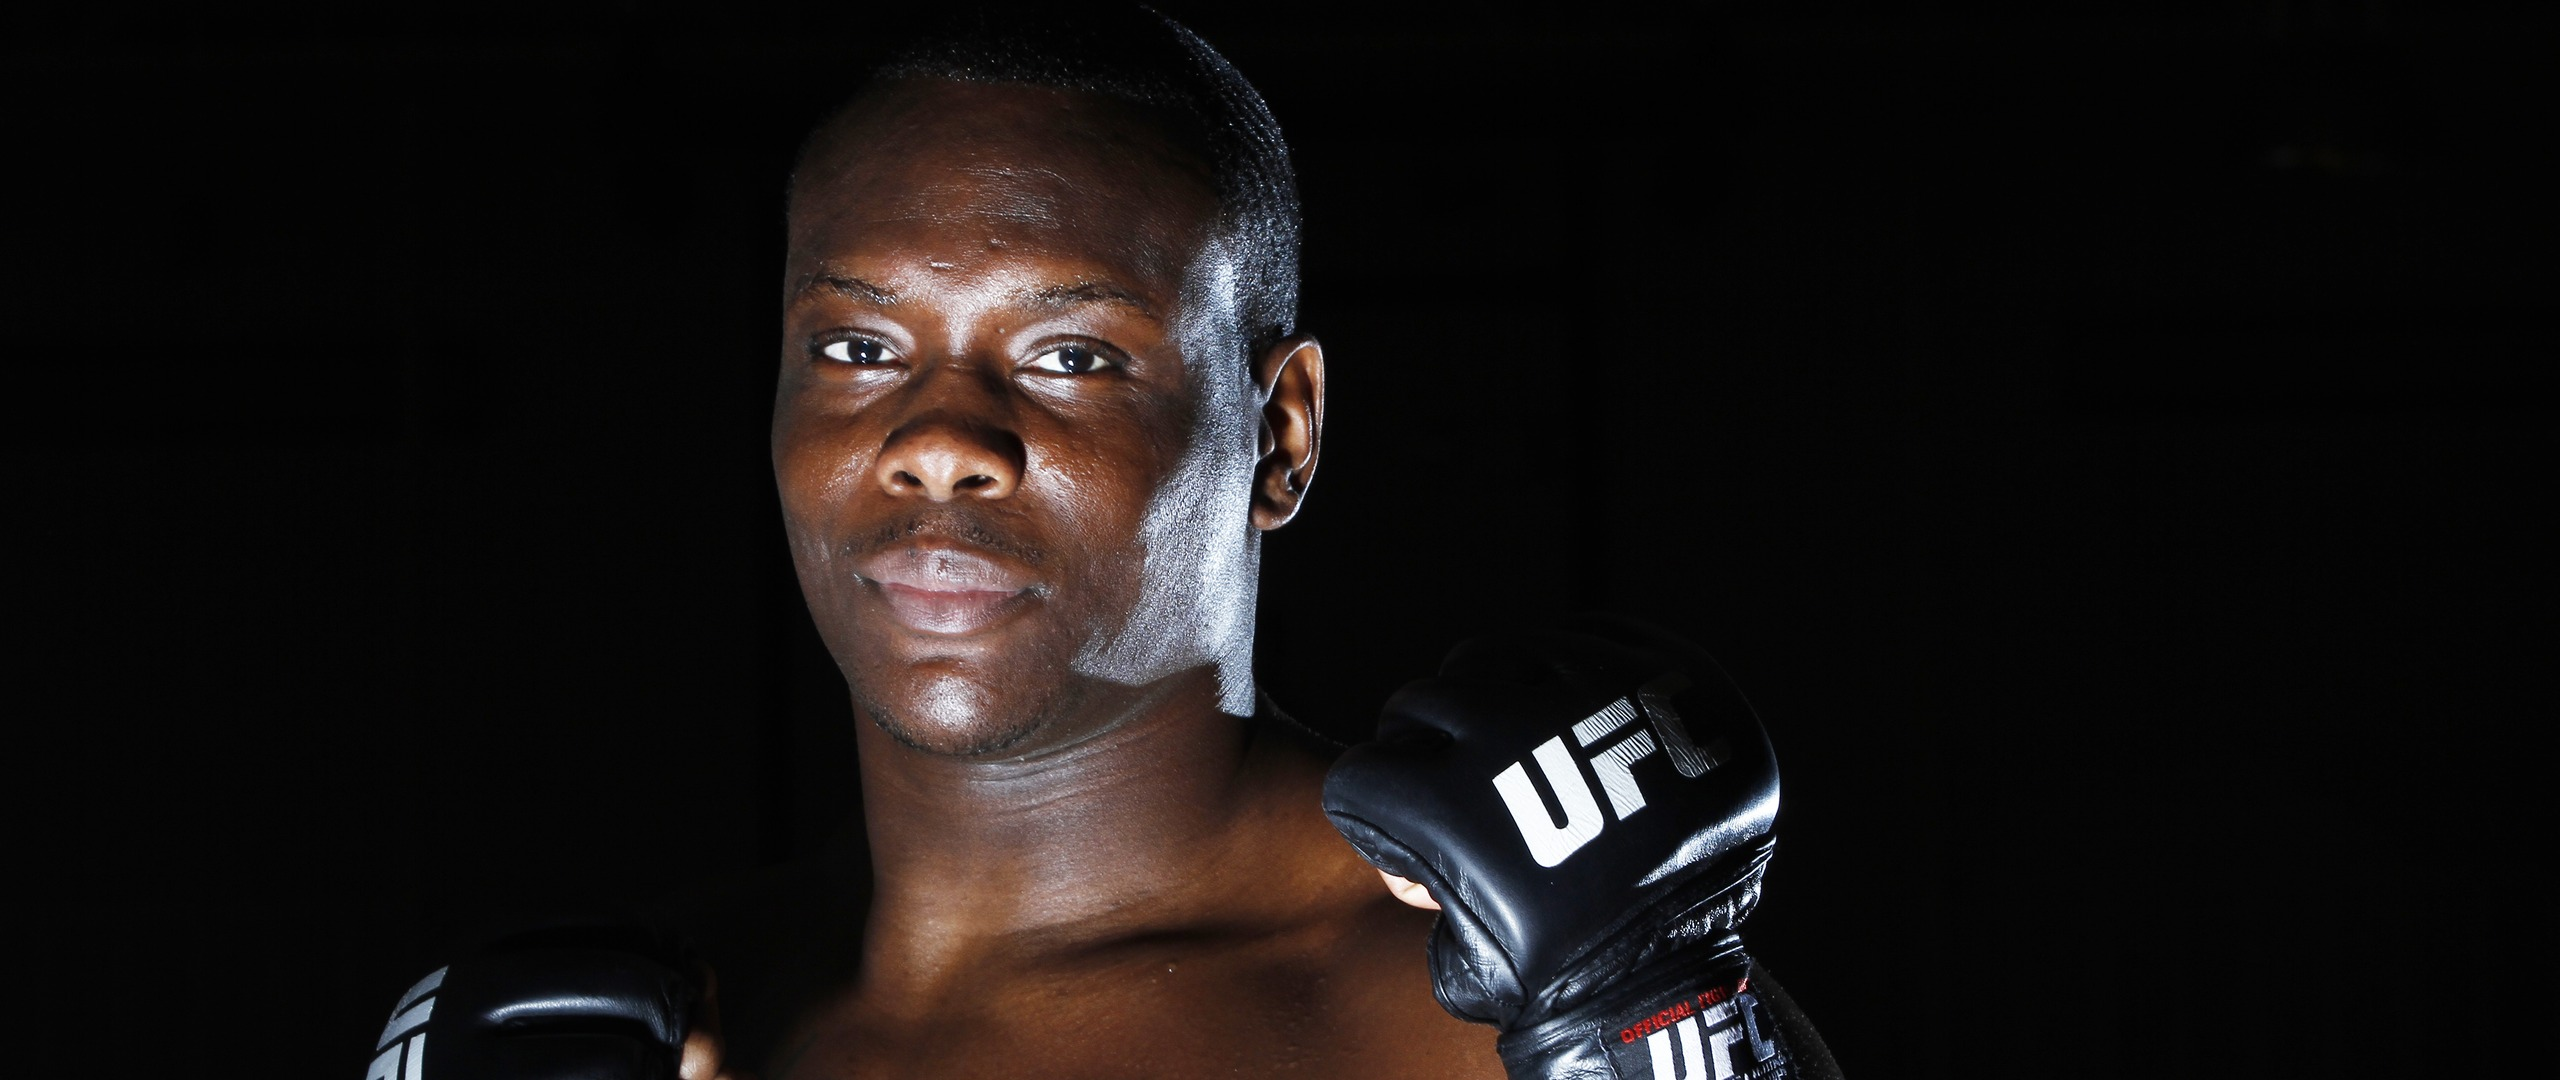 Download wallpaper 2560x1080 ovince saint preux ultimate fighting 2560x1080